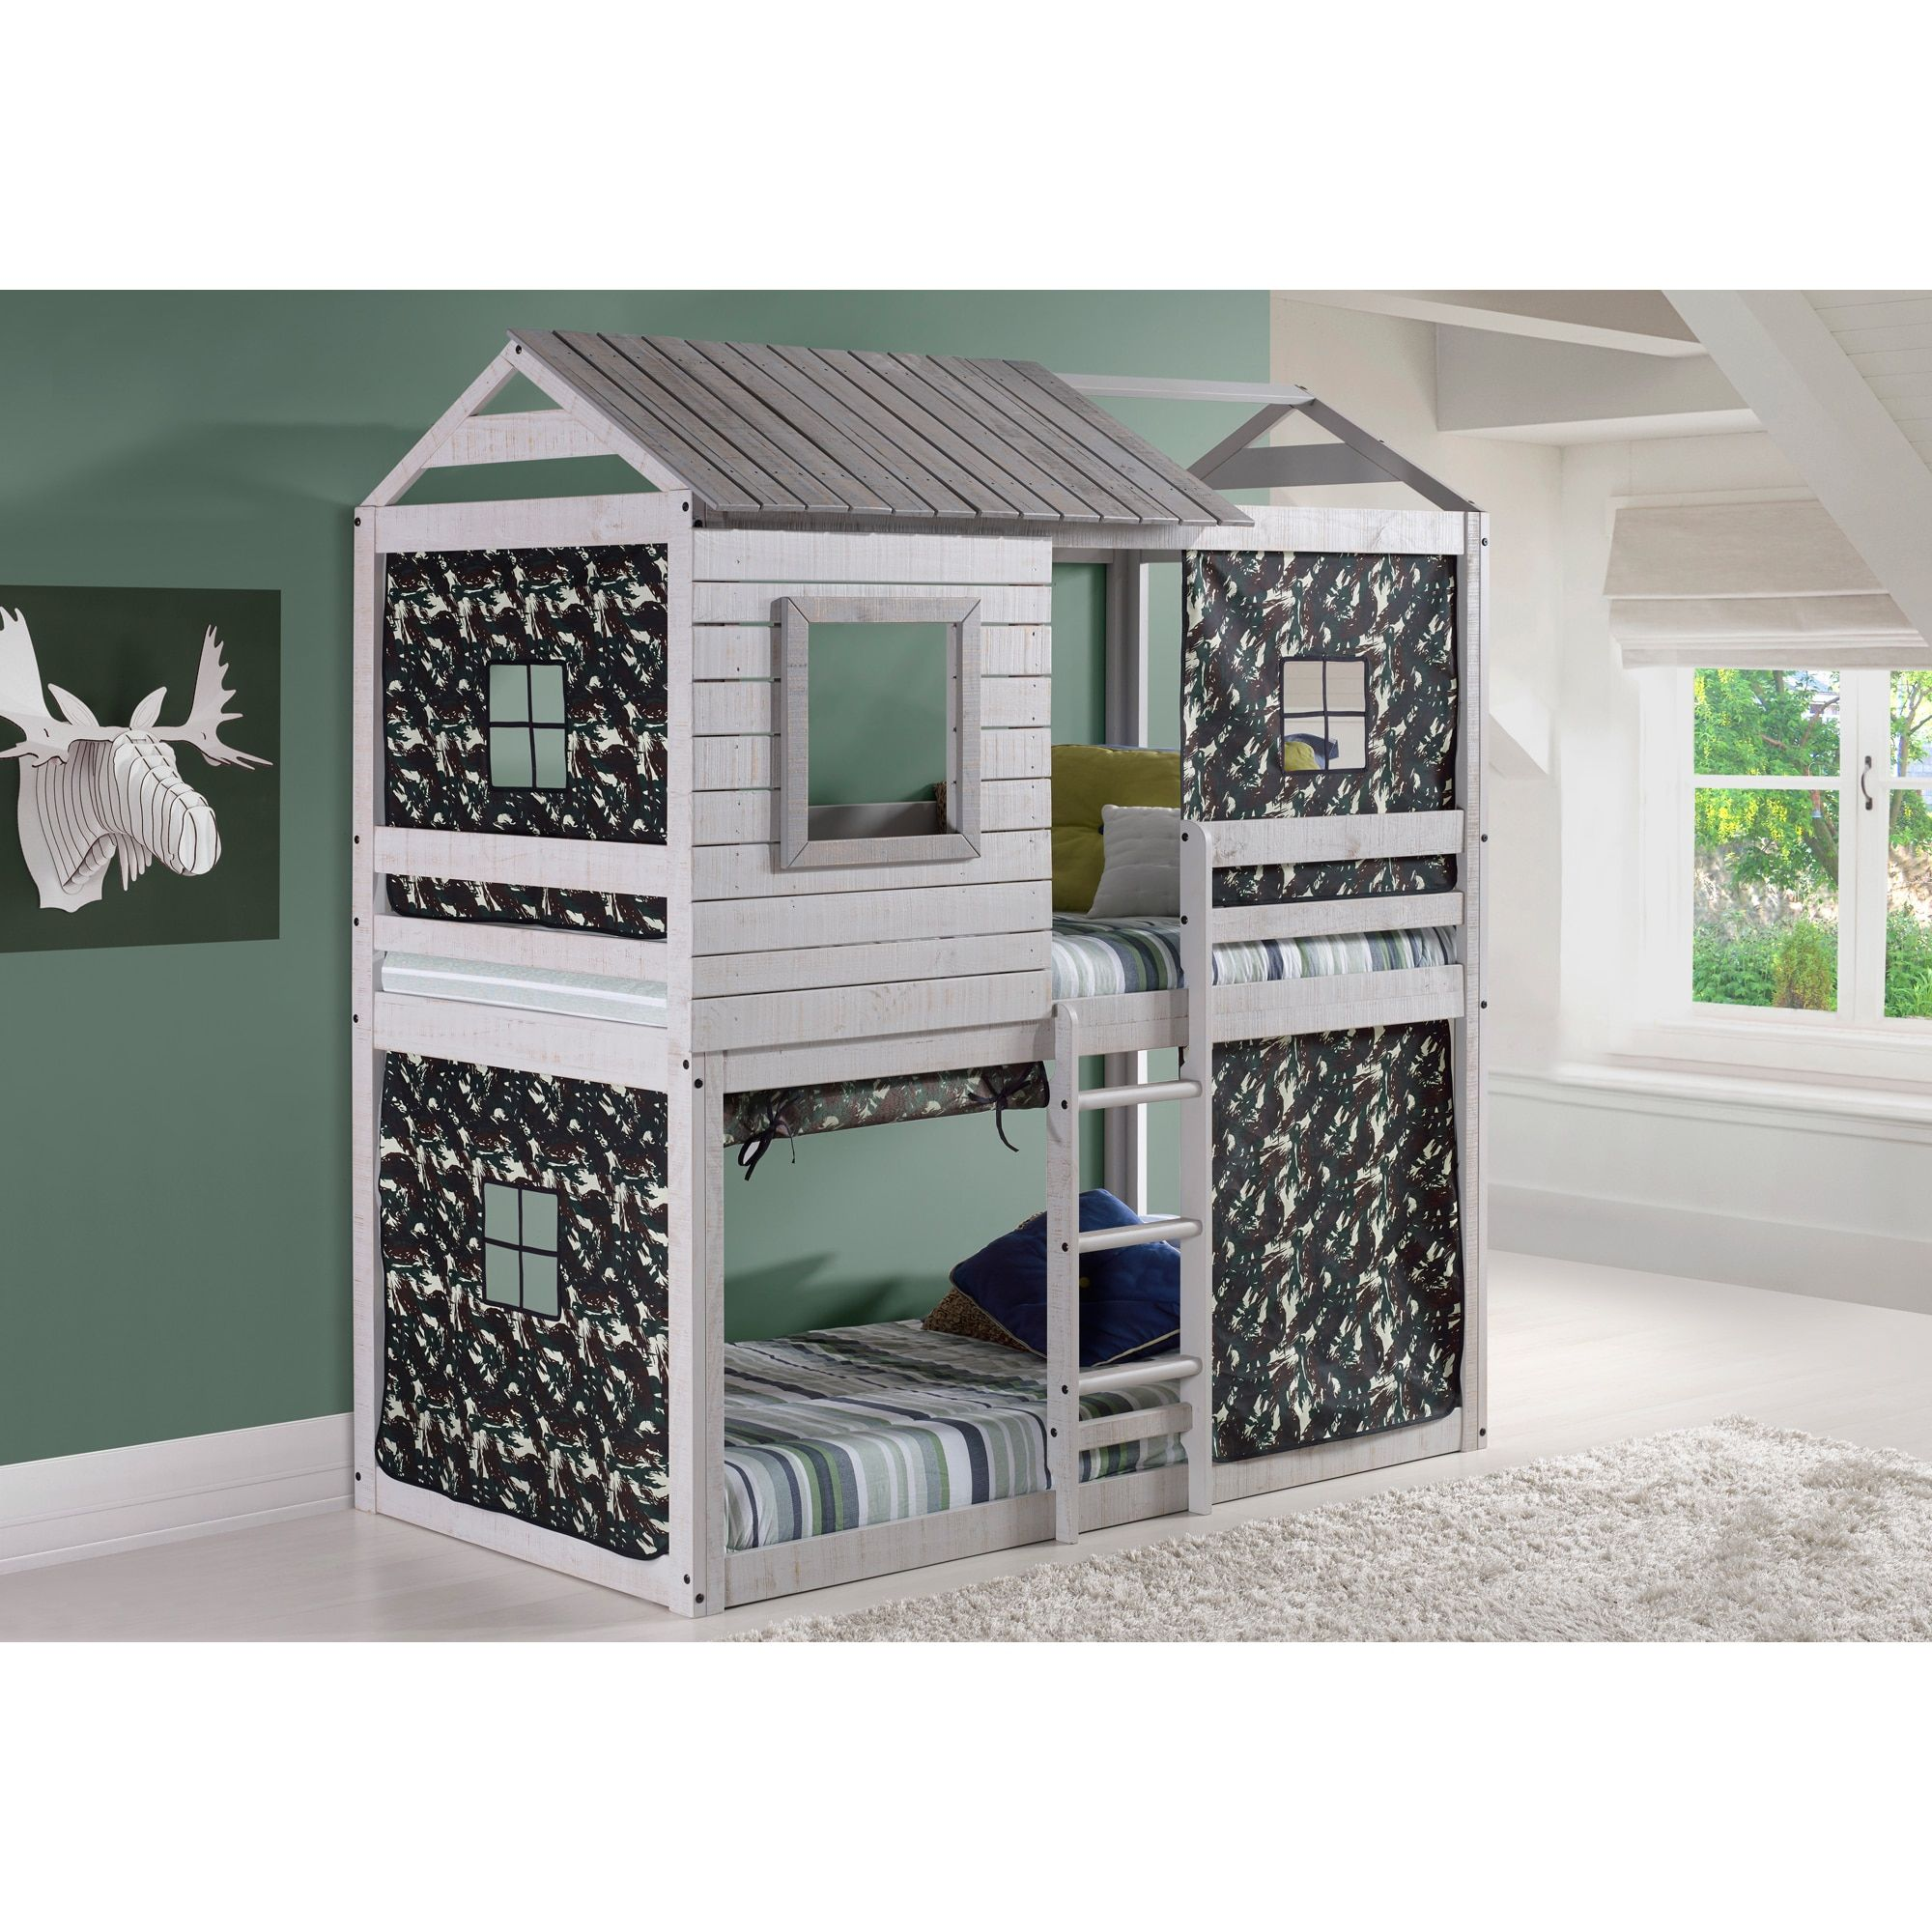 Donco Kids Loft-Style Light Grey Twin-over-Twin Bunk Bed with Green Camo Tent Kit (Camo - Twin over Twin)  sc 1 st  Pinterest & Donco Kids Loft-Style Light Grey Twin-over-Twin Bunk Bed with ...